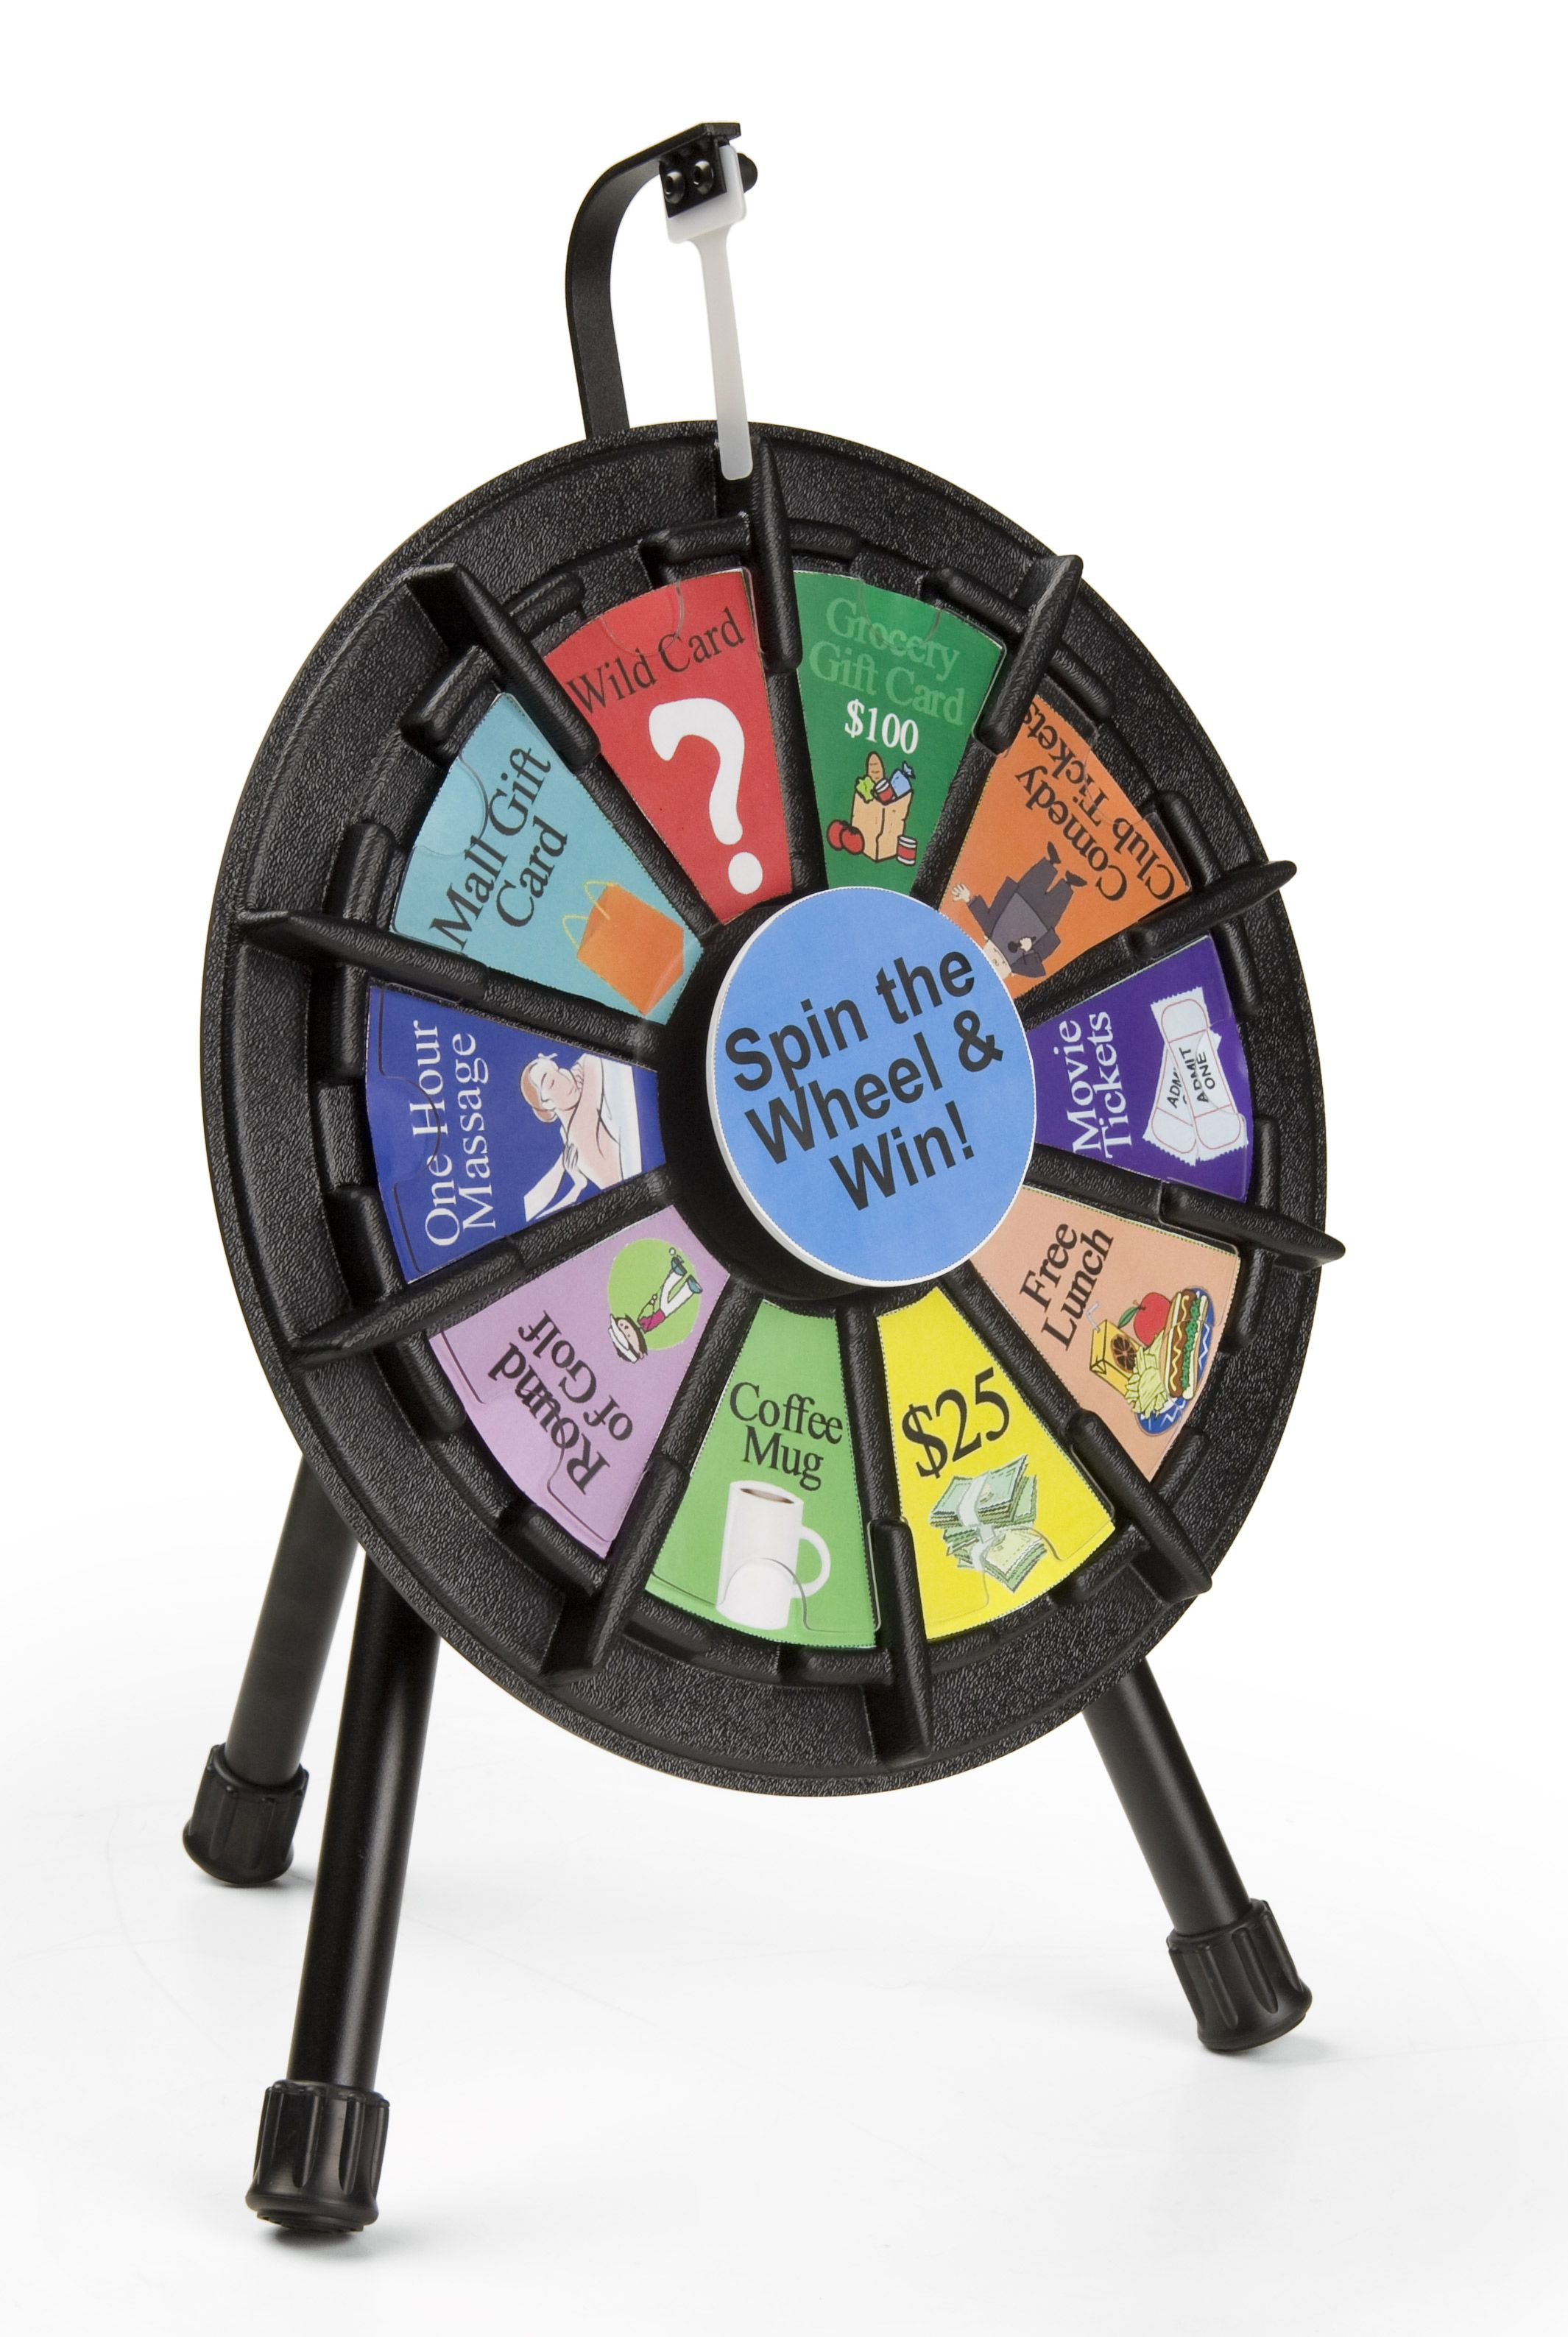 Prize Wheel With 10 Slots Printable Templates Countertop Mini Black Prize Wheel Template Printable Wheel